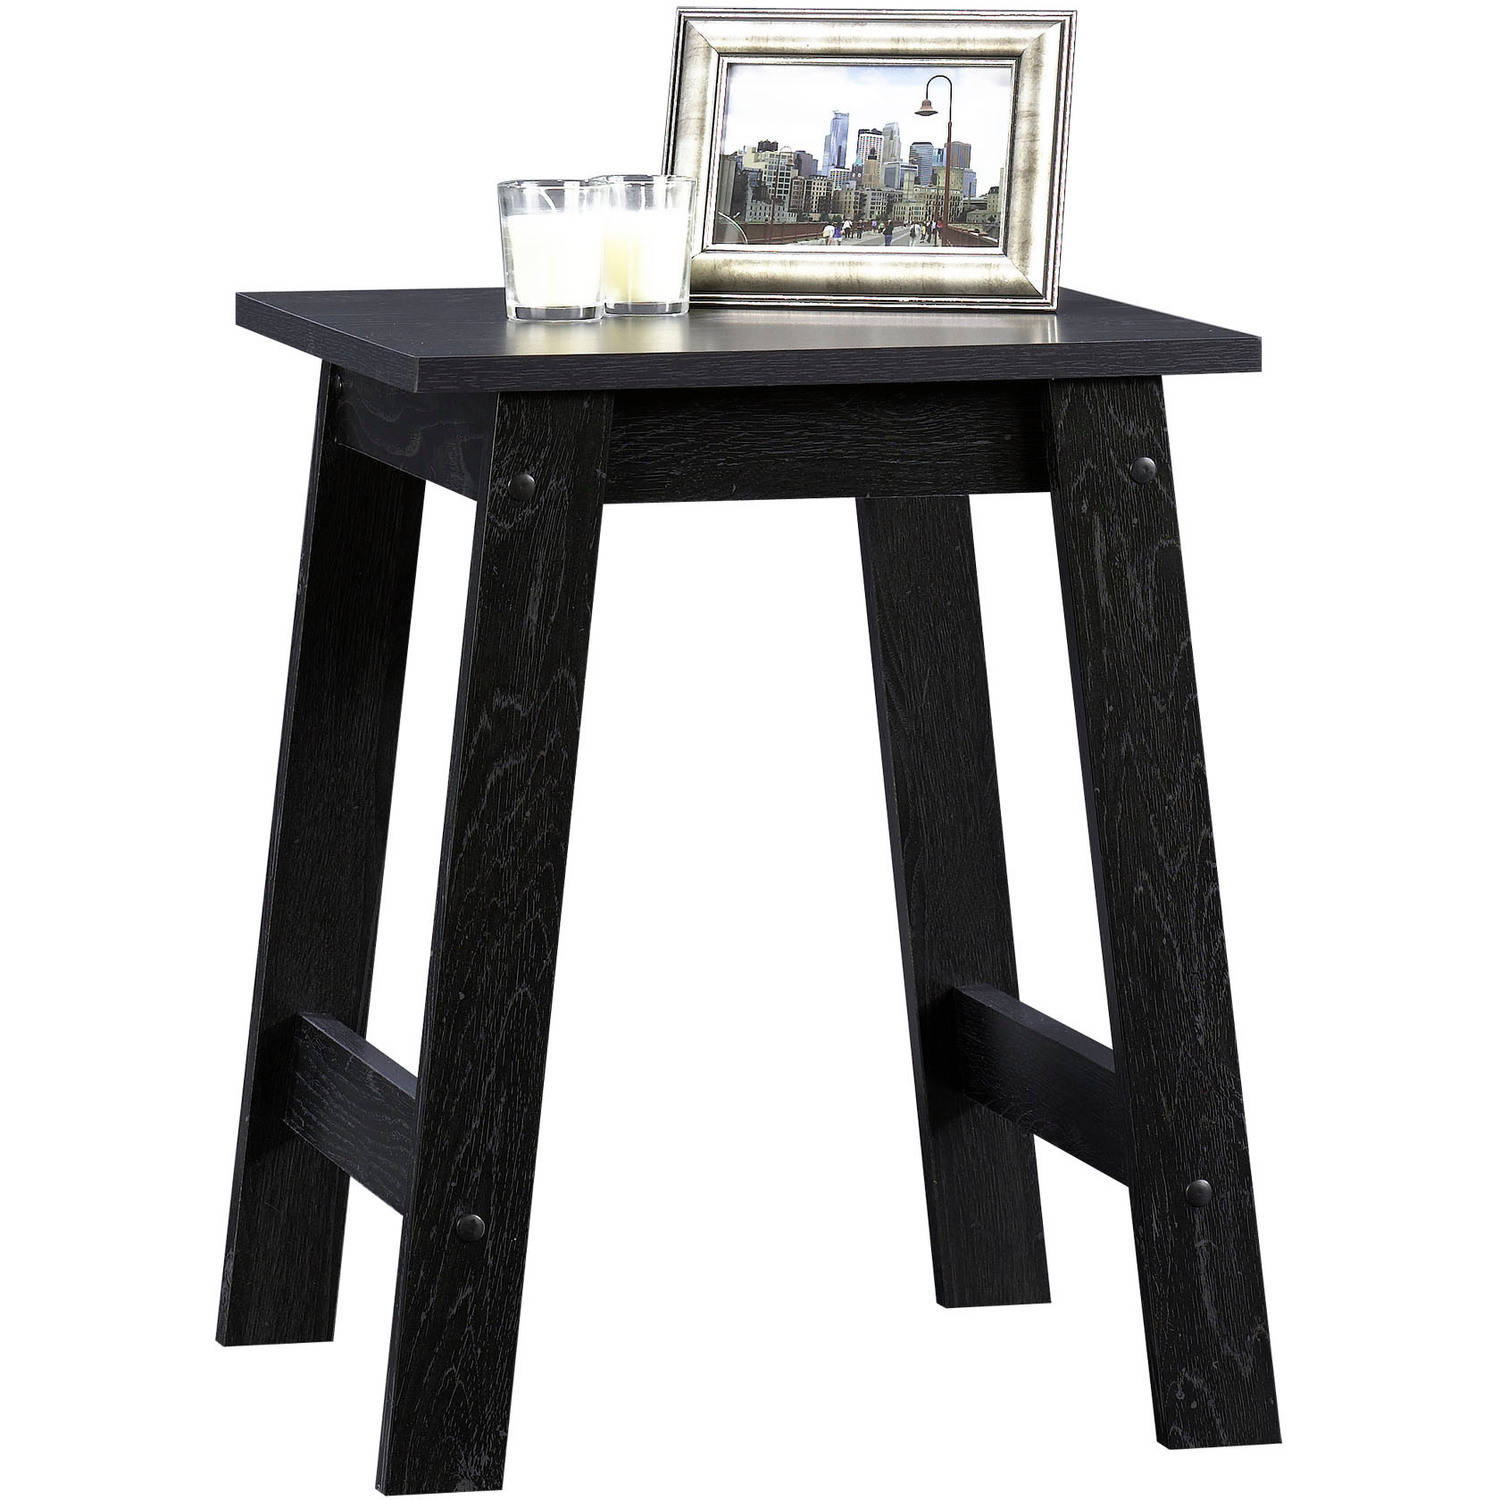 Beau Sauder Beginnings Collection Side Table, Black